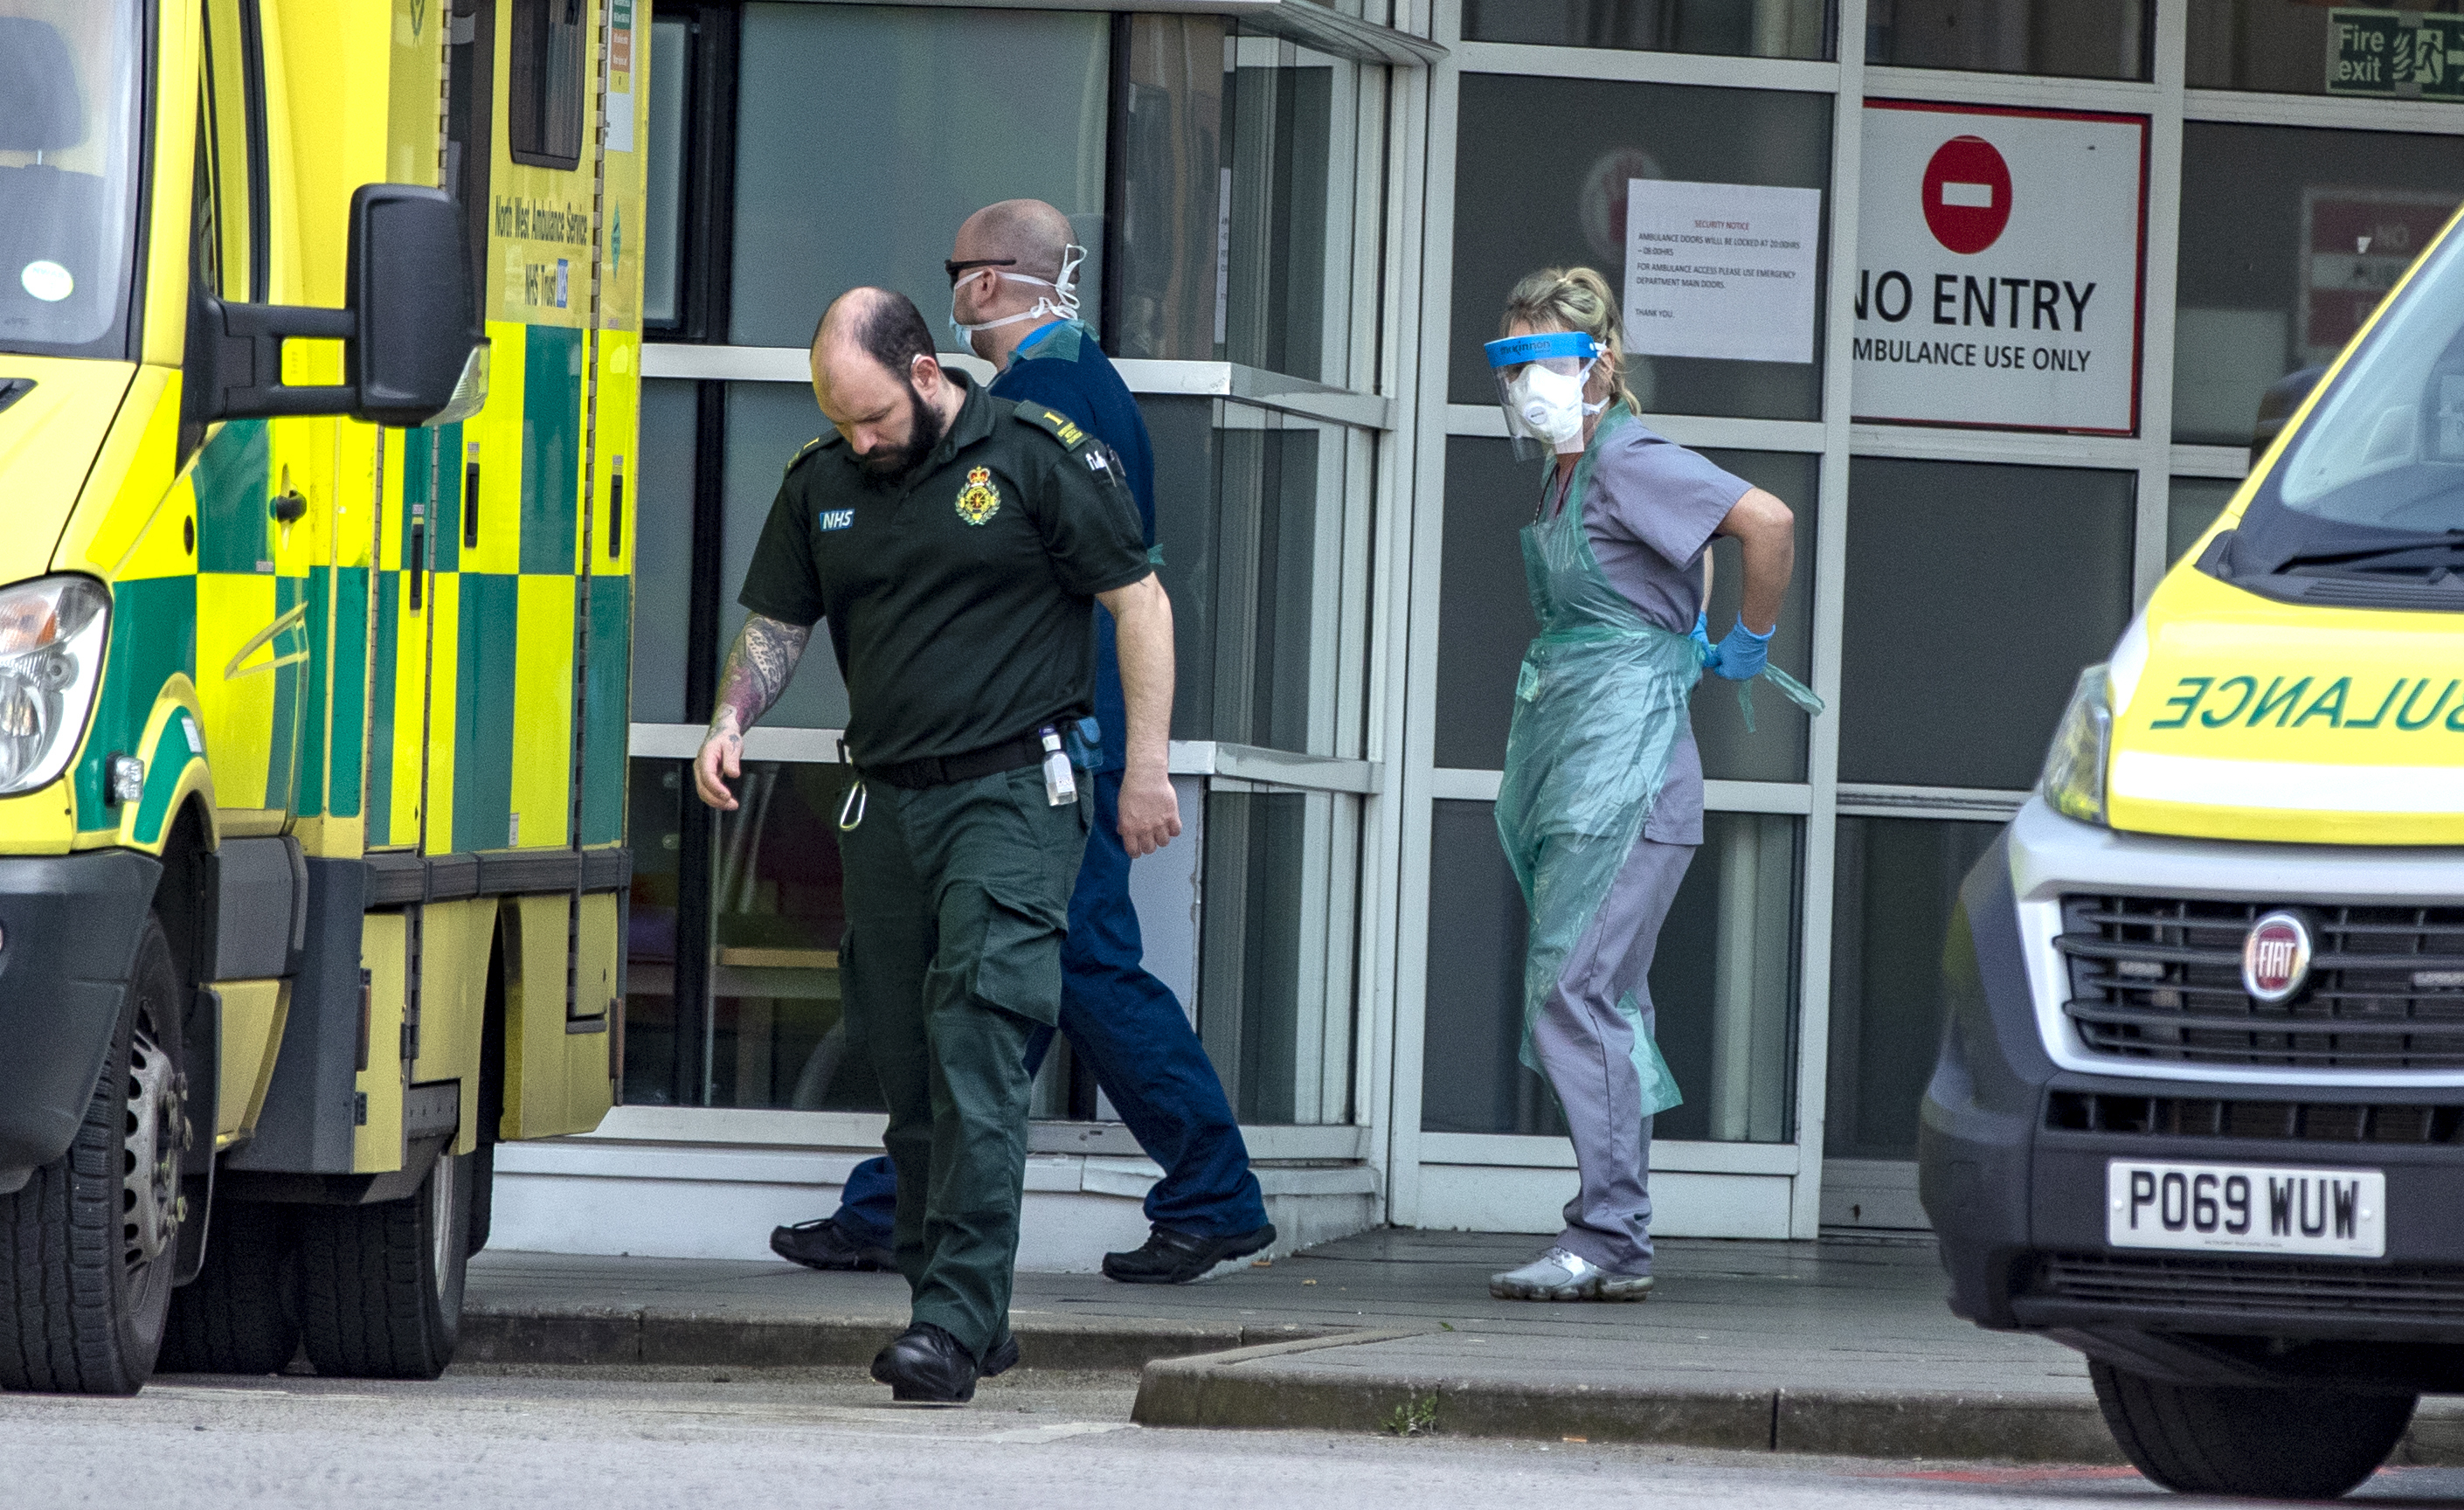 Hospital staff and ambulance staff prepare to take a patient into the Royal Liverpool University Hospital, as Prime Minister Boris Johnson has said the Government is ready to impose tougher restrictions to curb the spread of the coronavirus if people do not follow the guidance on social distancing.